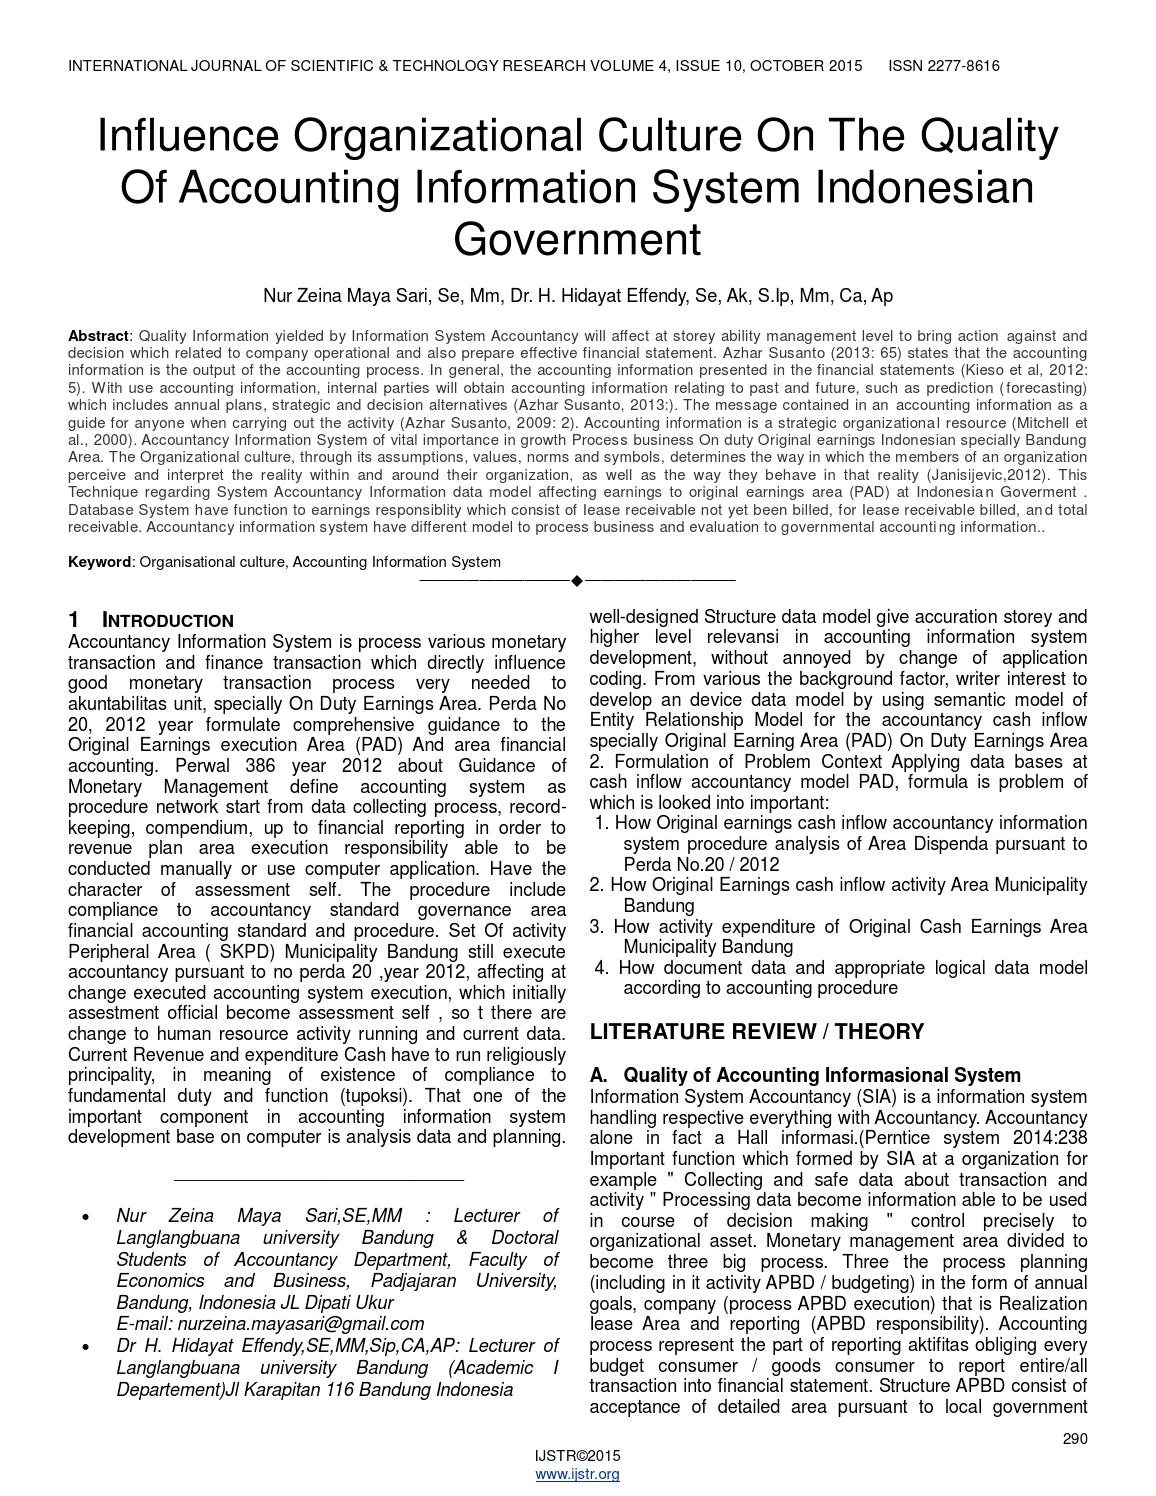 Influence organizational culture on the quality of accounting information system indonesian